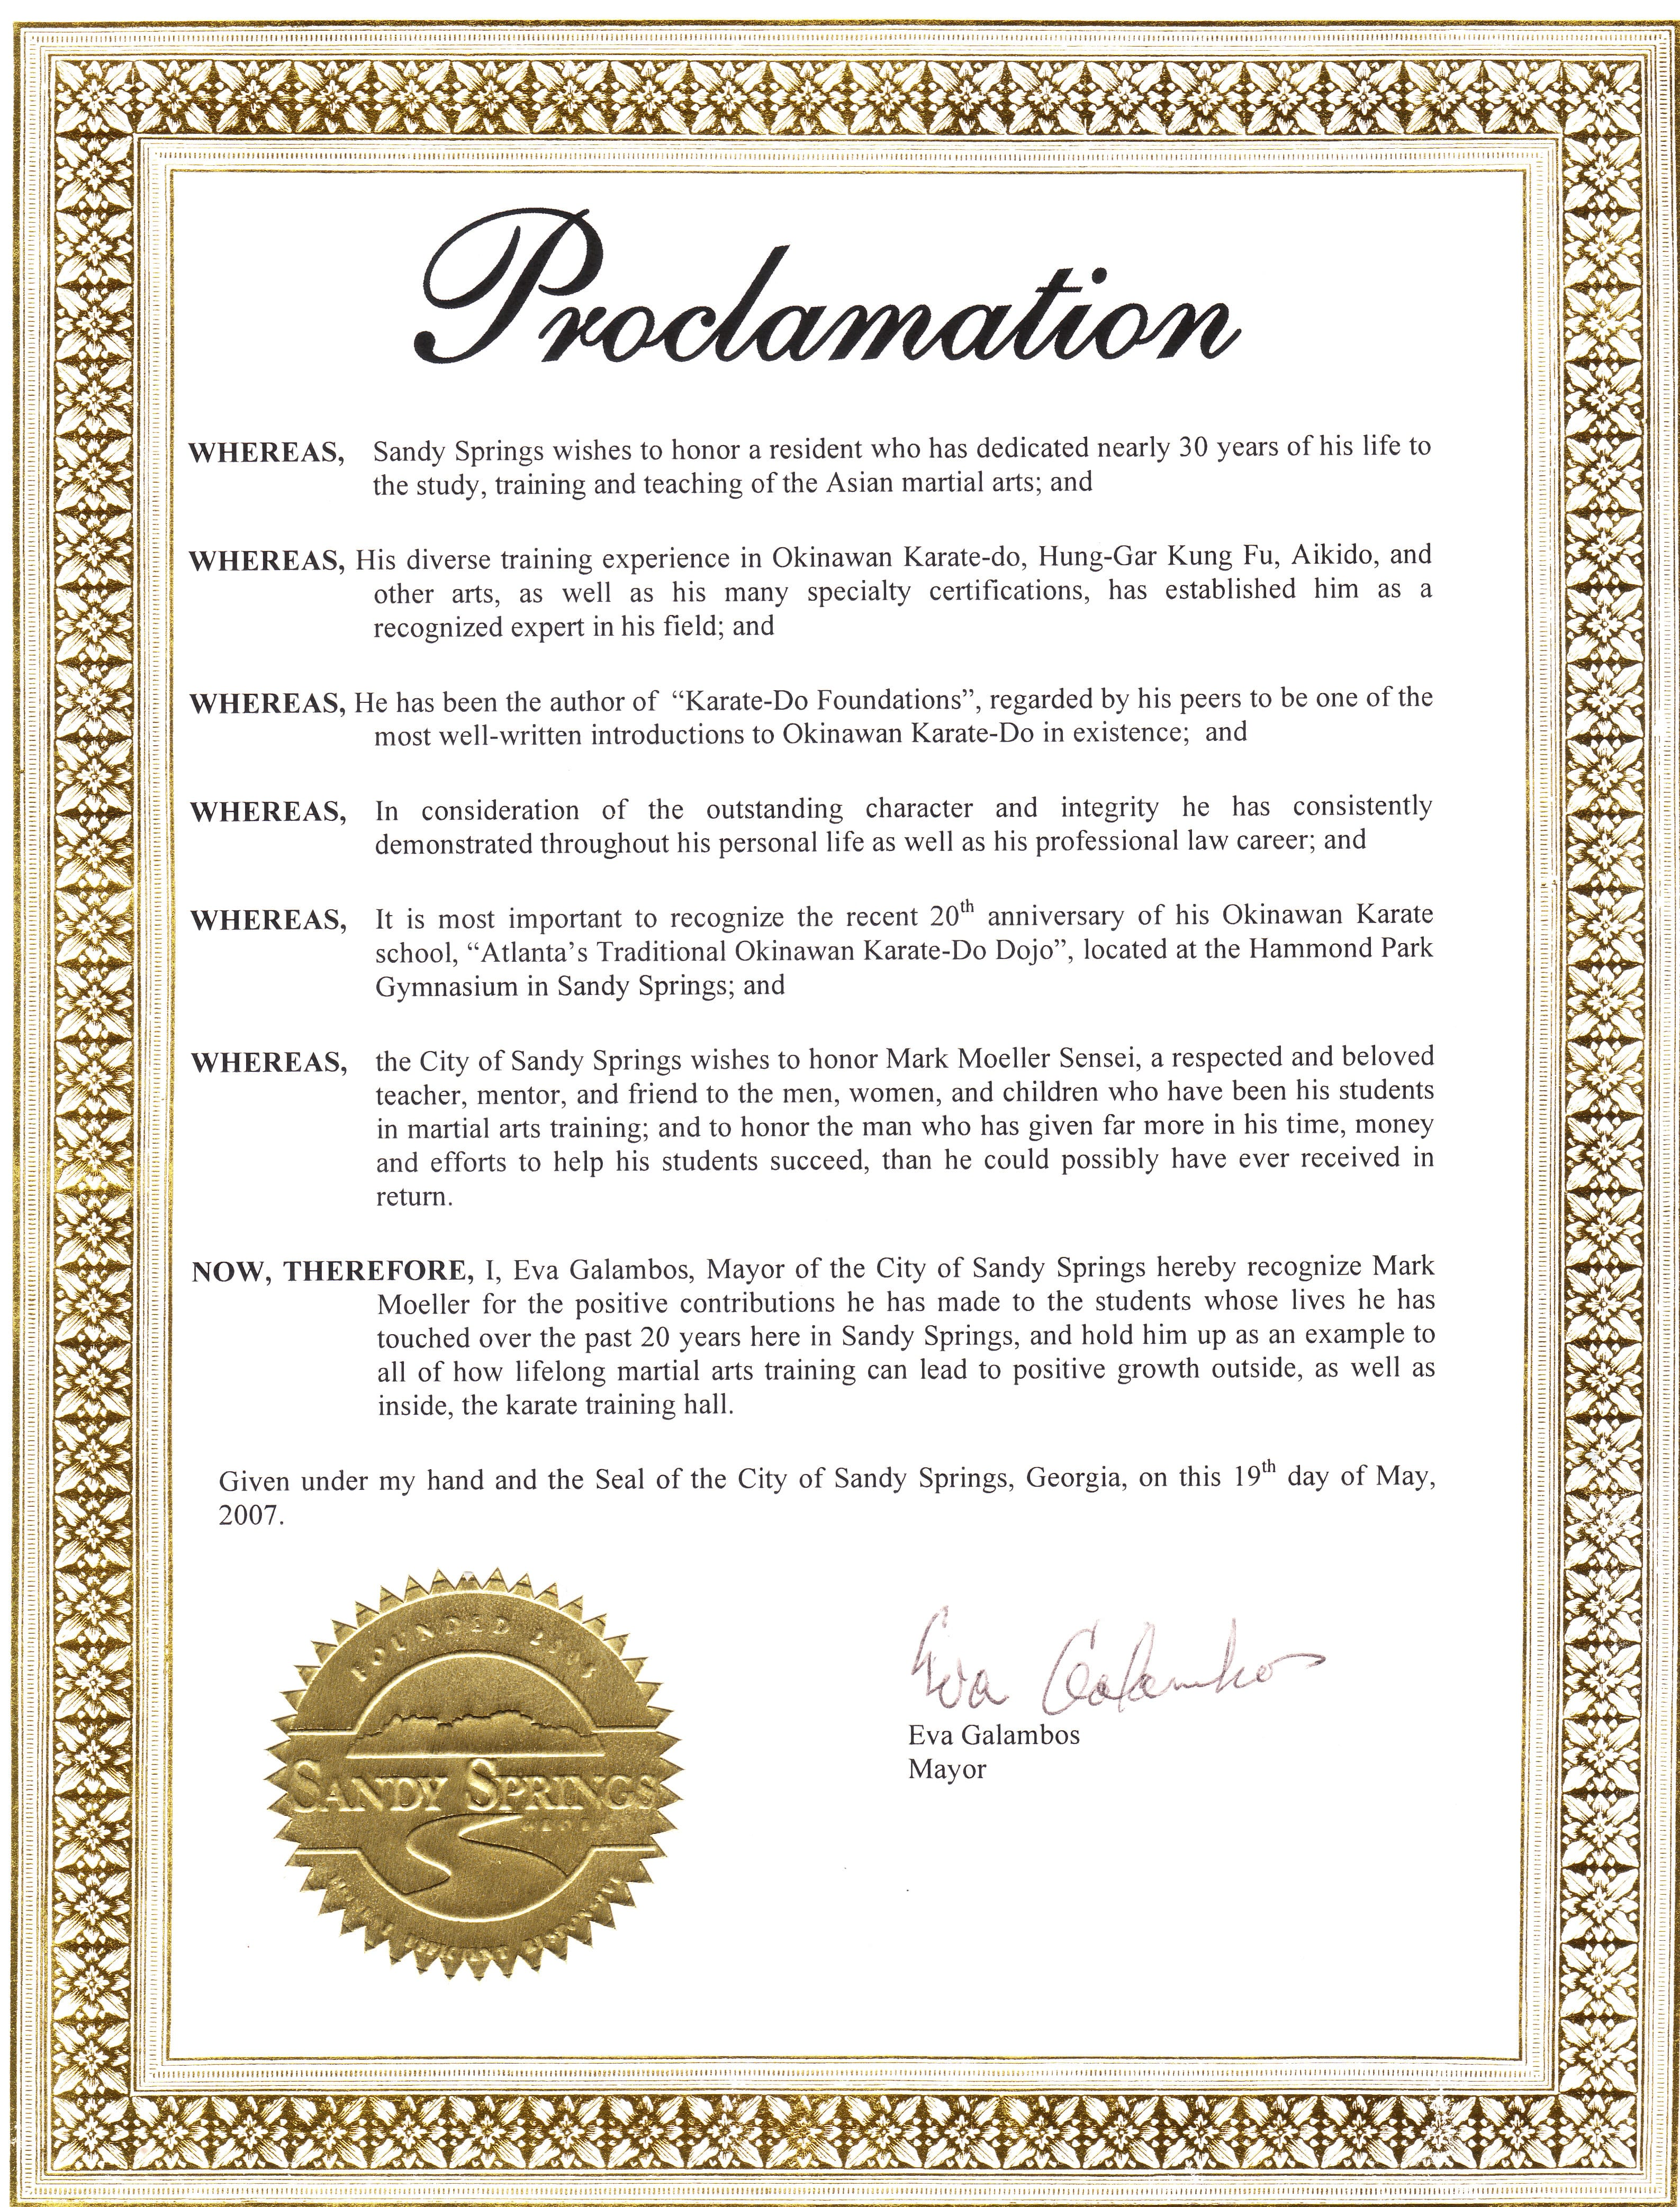 20th anniversary proclamation